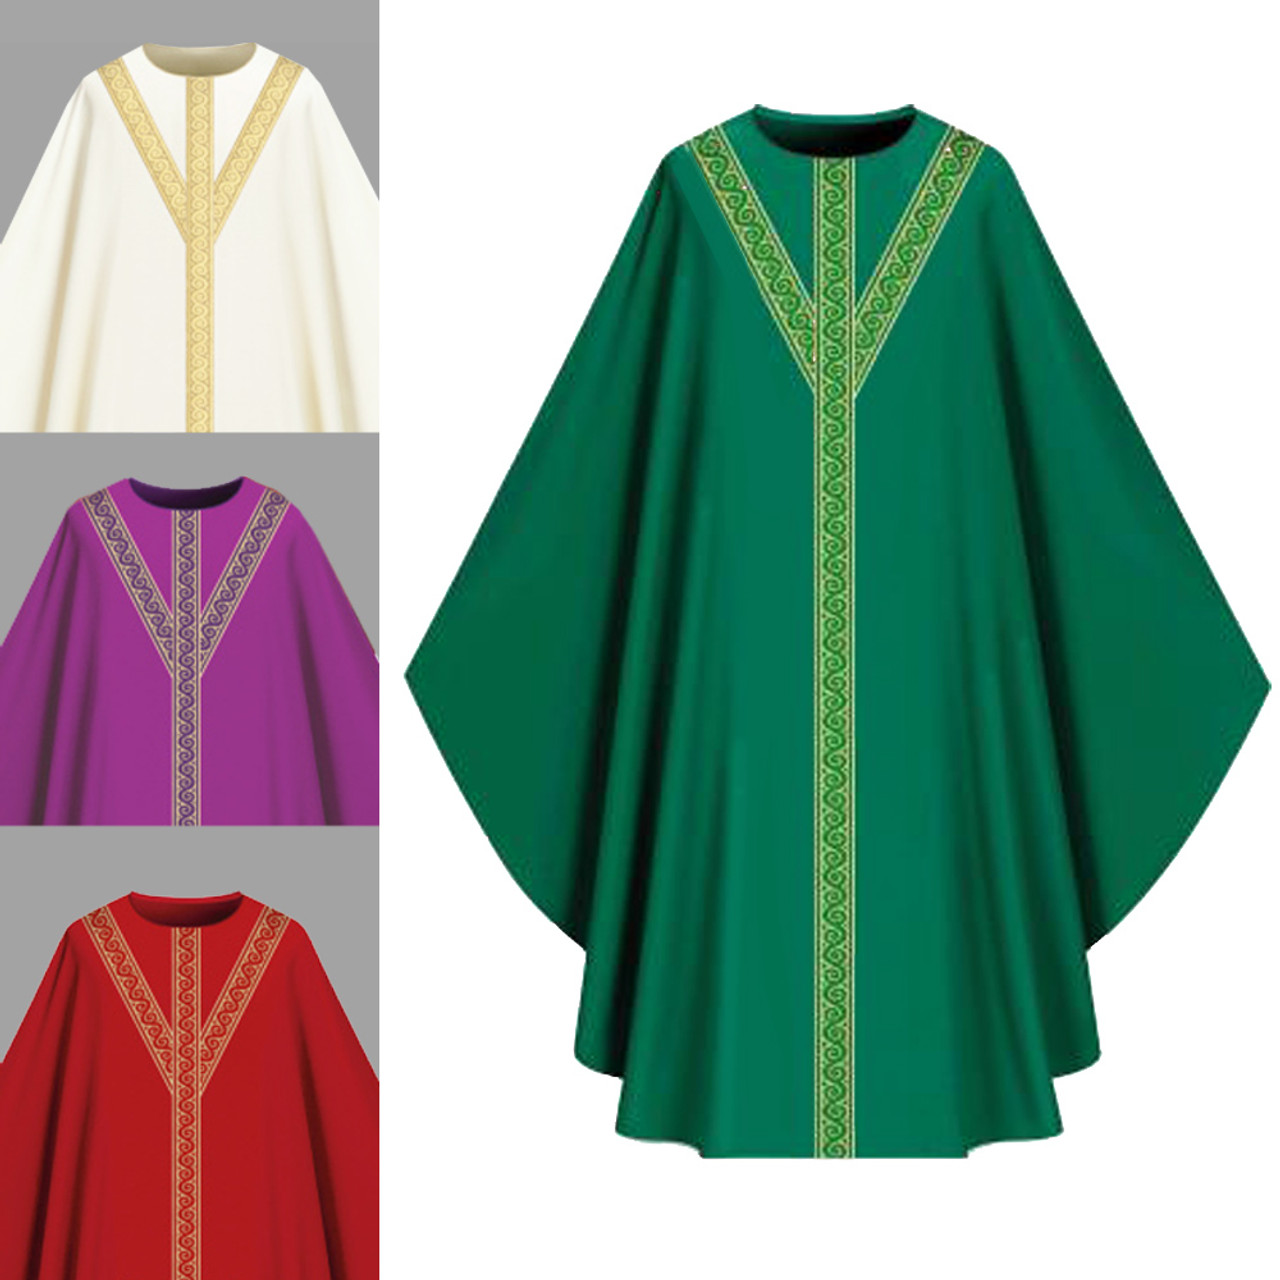 701053 Green Assisi Chasuble